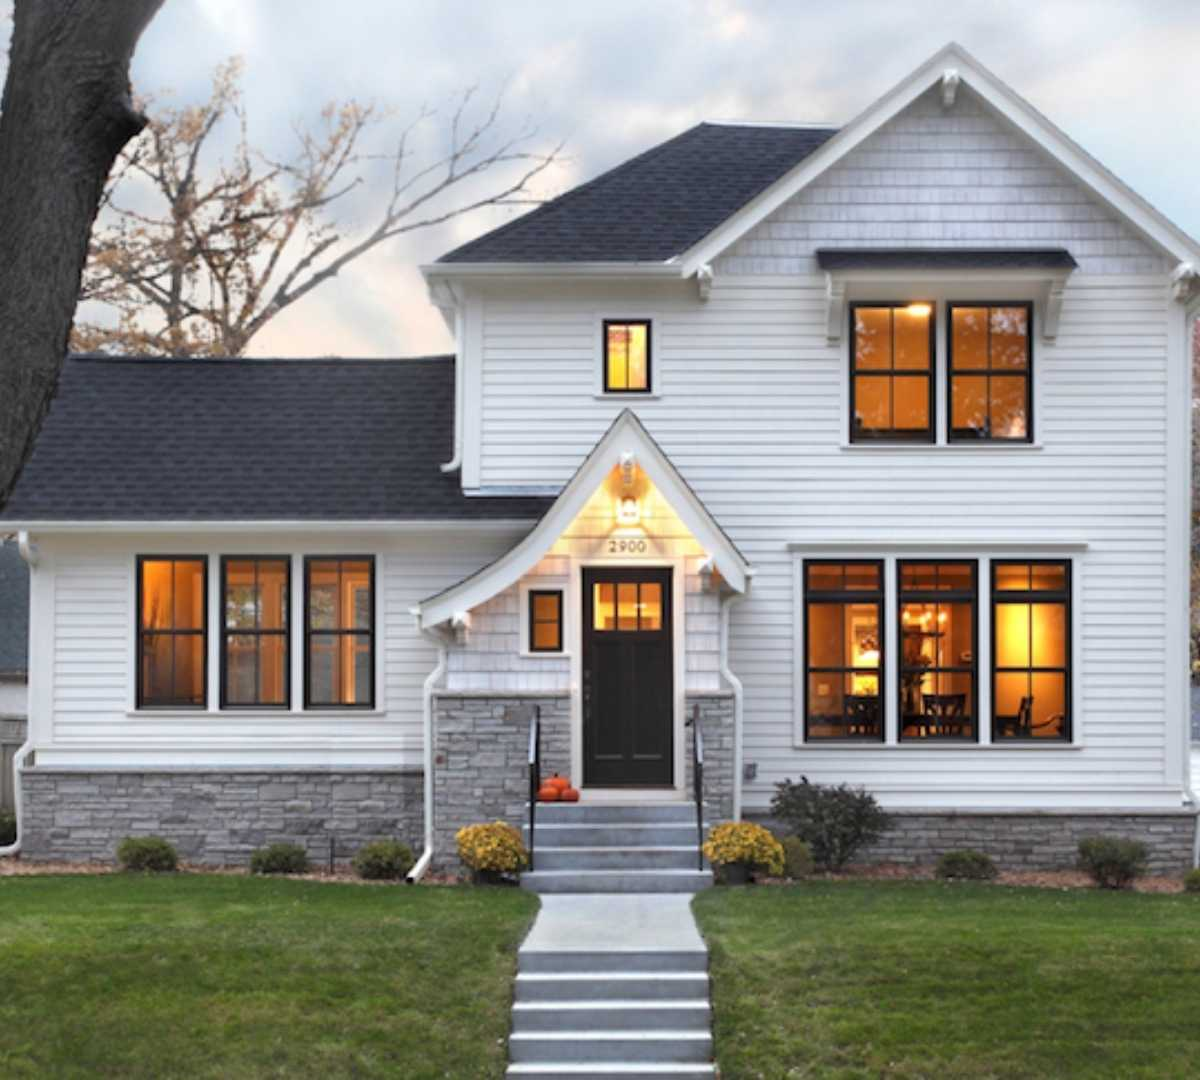 replacement windows roofing and doors on dream home by Green Eco Solutions